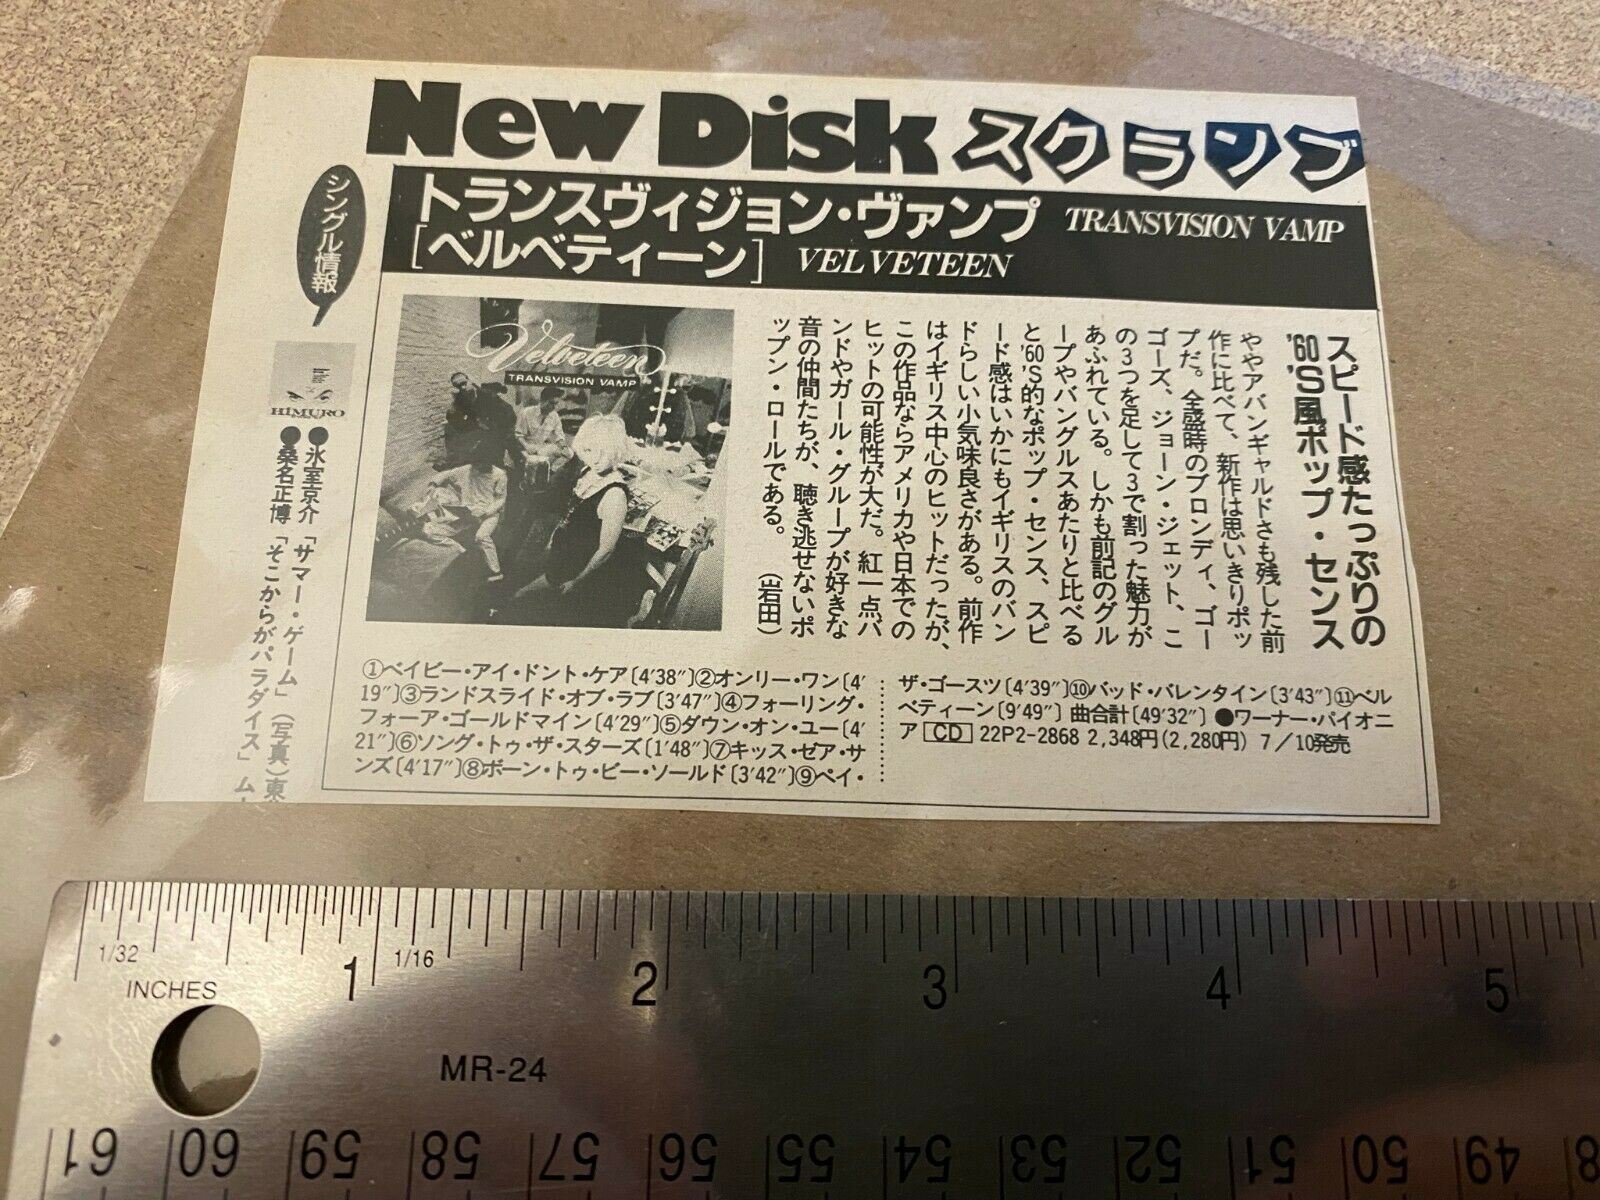 Transvision Vamp Magazine Clipping Cutting Photo From Japan - $5.00